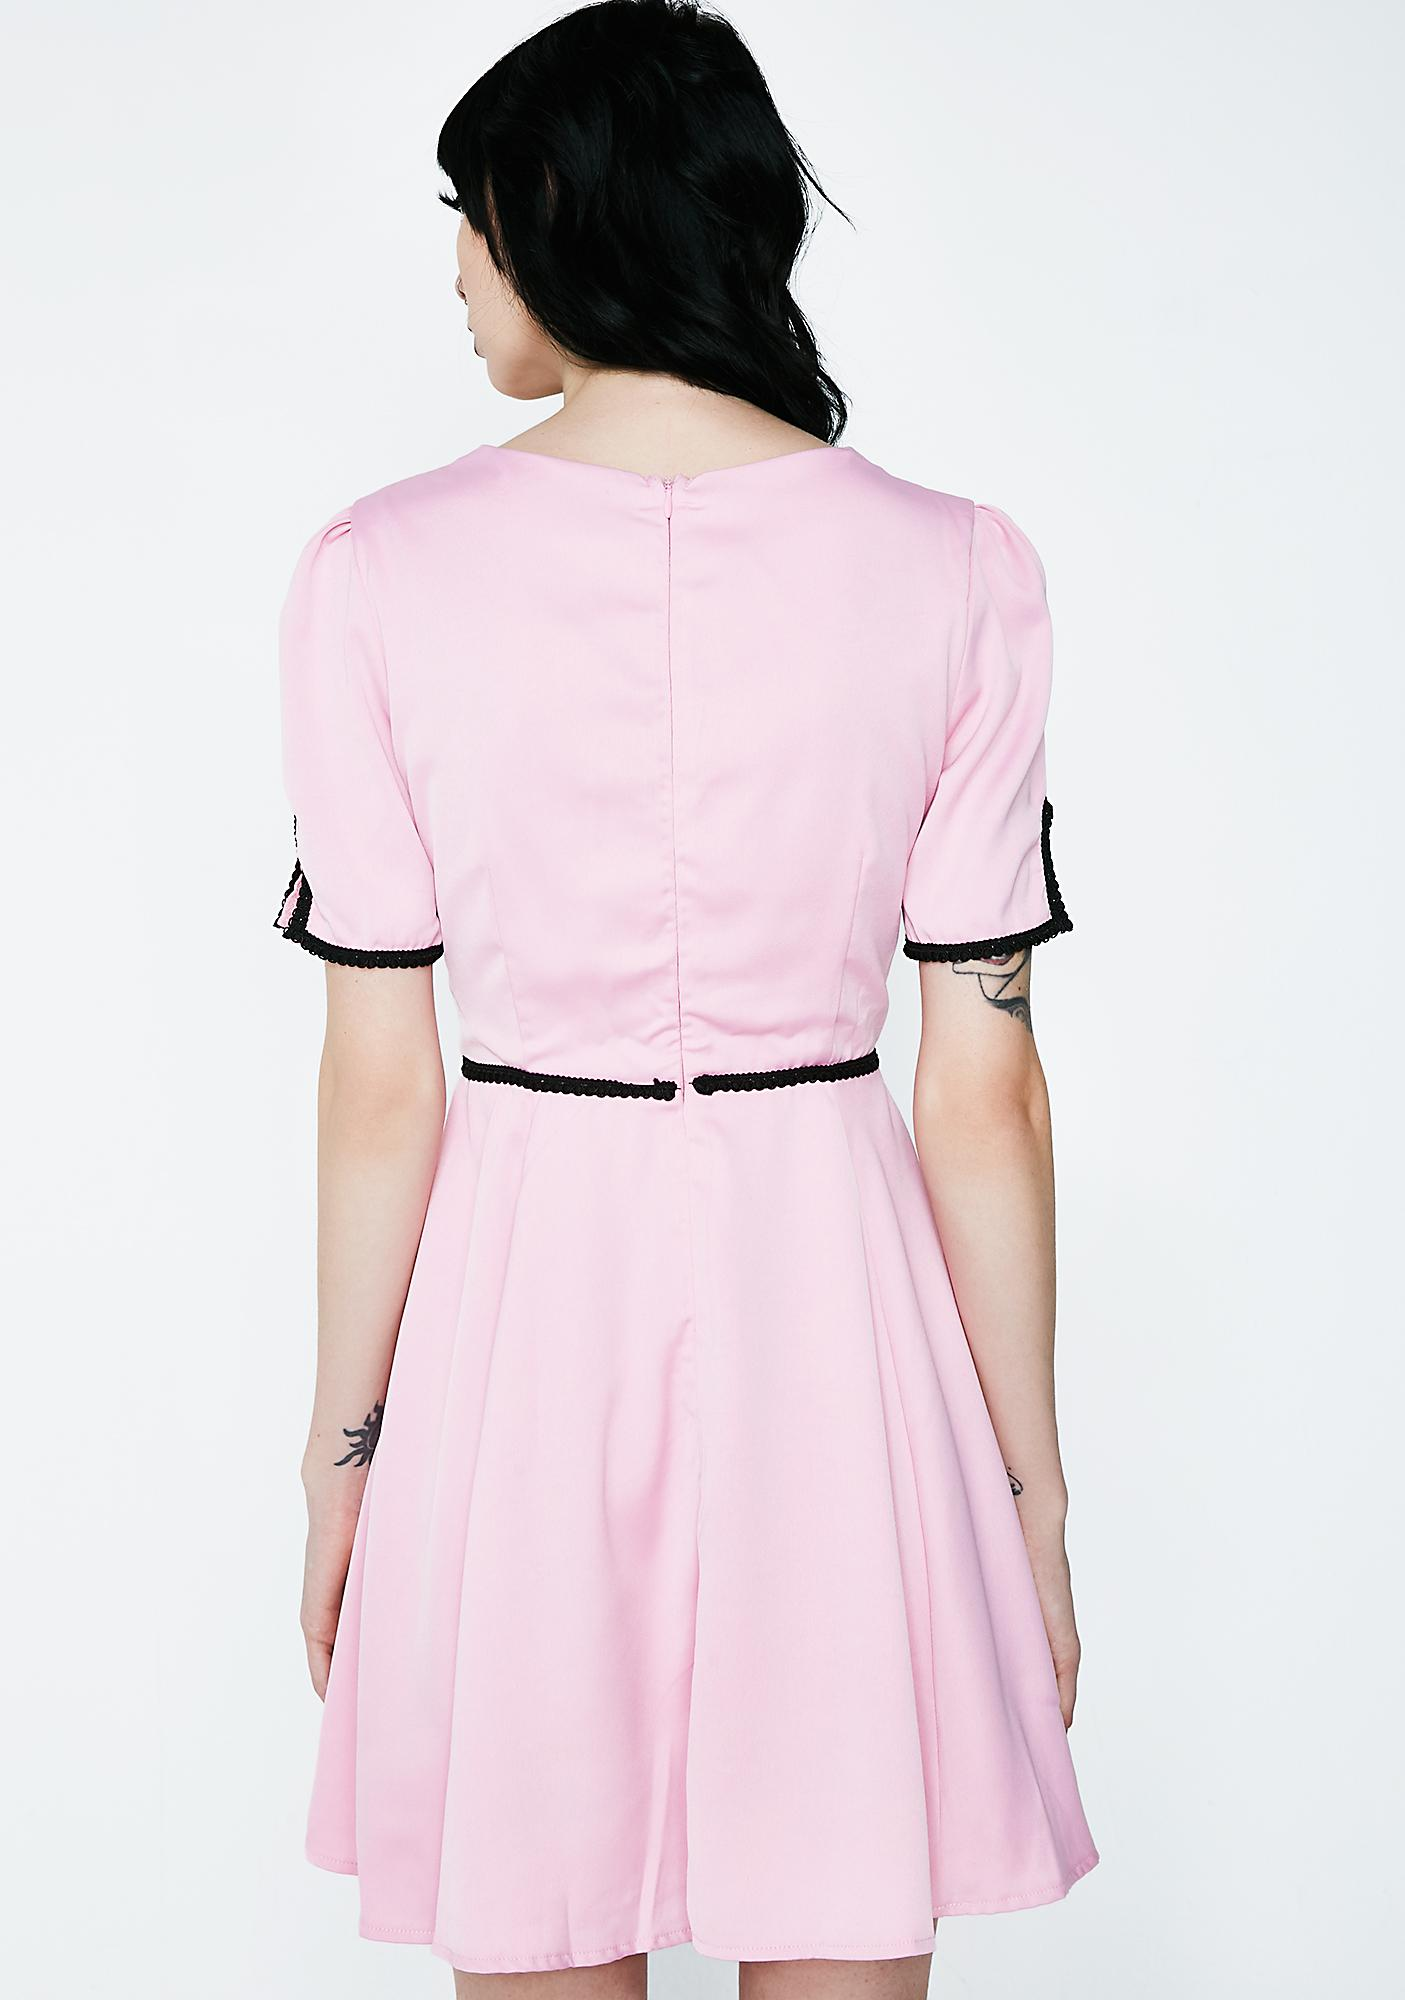 SISTER JANE Troublemaker Skater Dress